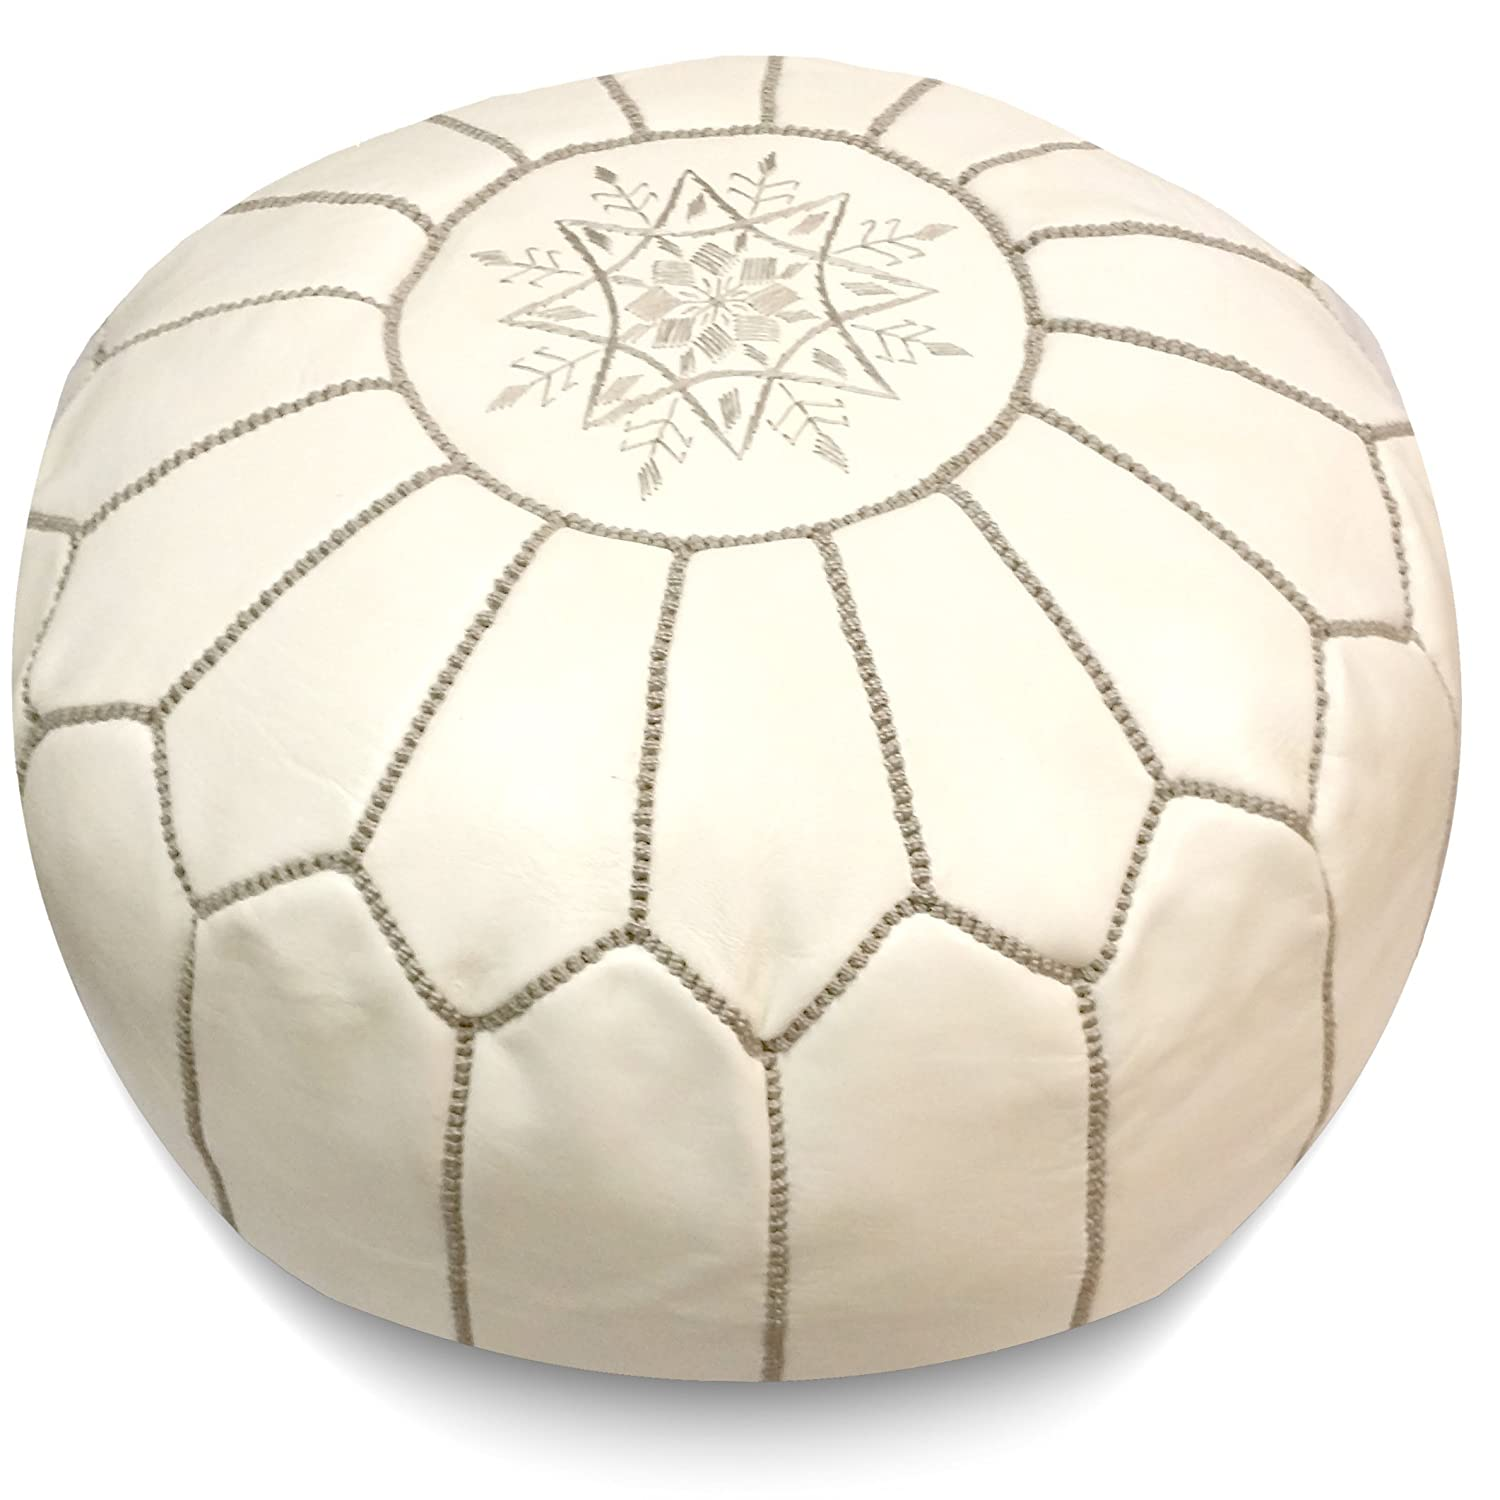 """Mina Stuffed Moroccan Leather Pouf Ottoman, Many Colors Available, 20"""" Diameter and 13"""" Height (Black) Souvenirs and More MNPF"""